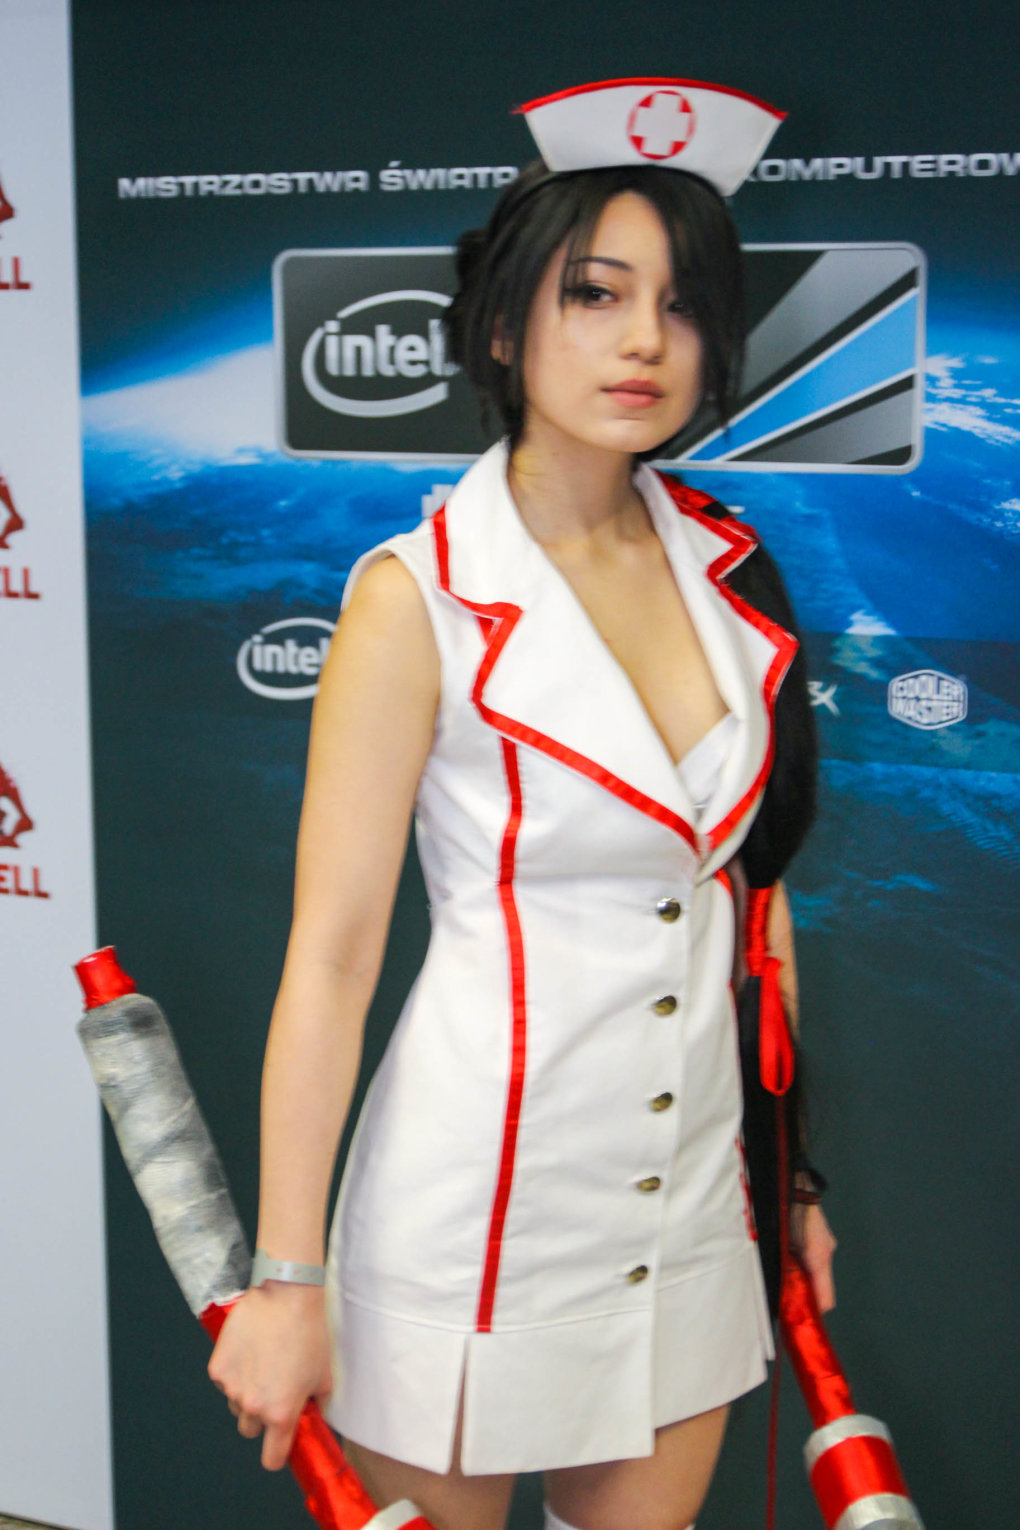 f806cnj - lol cosplay at intel extreme masters